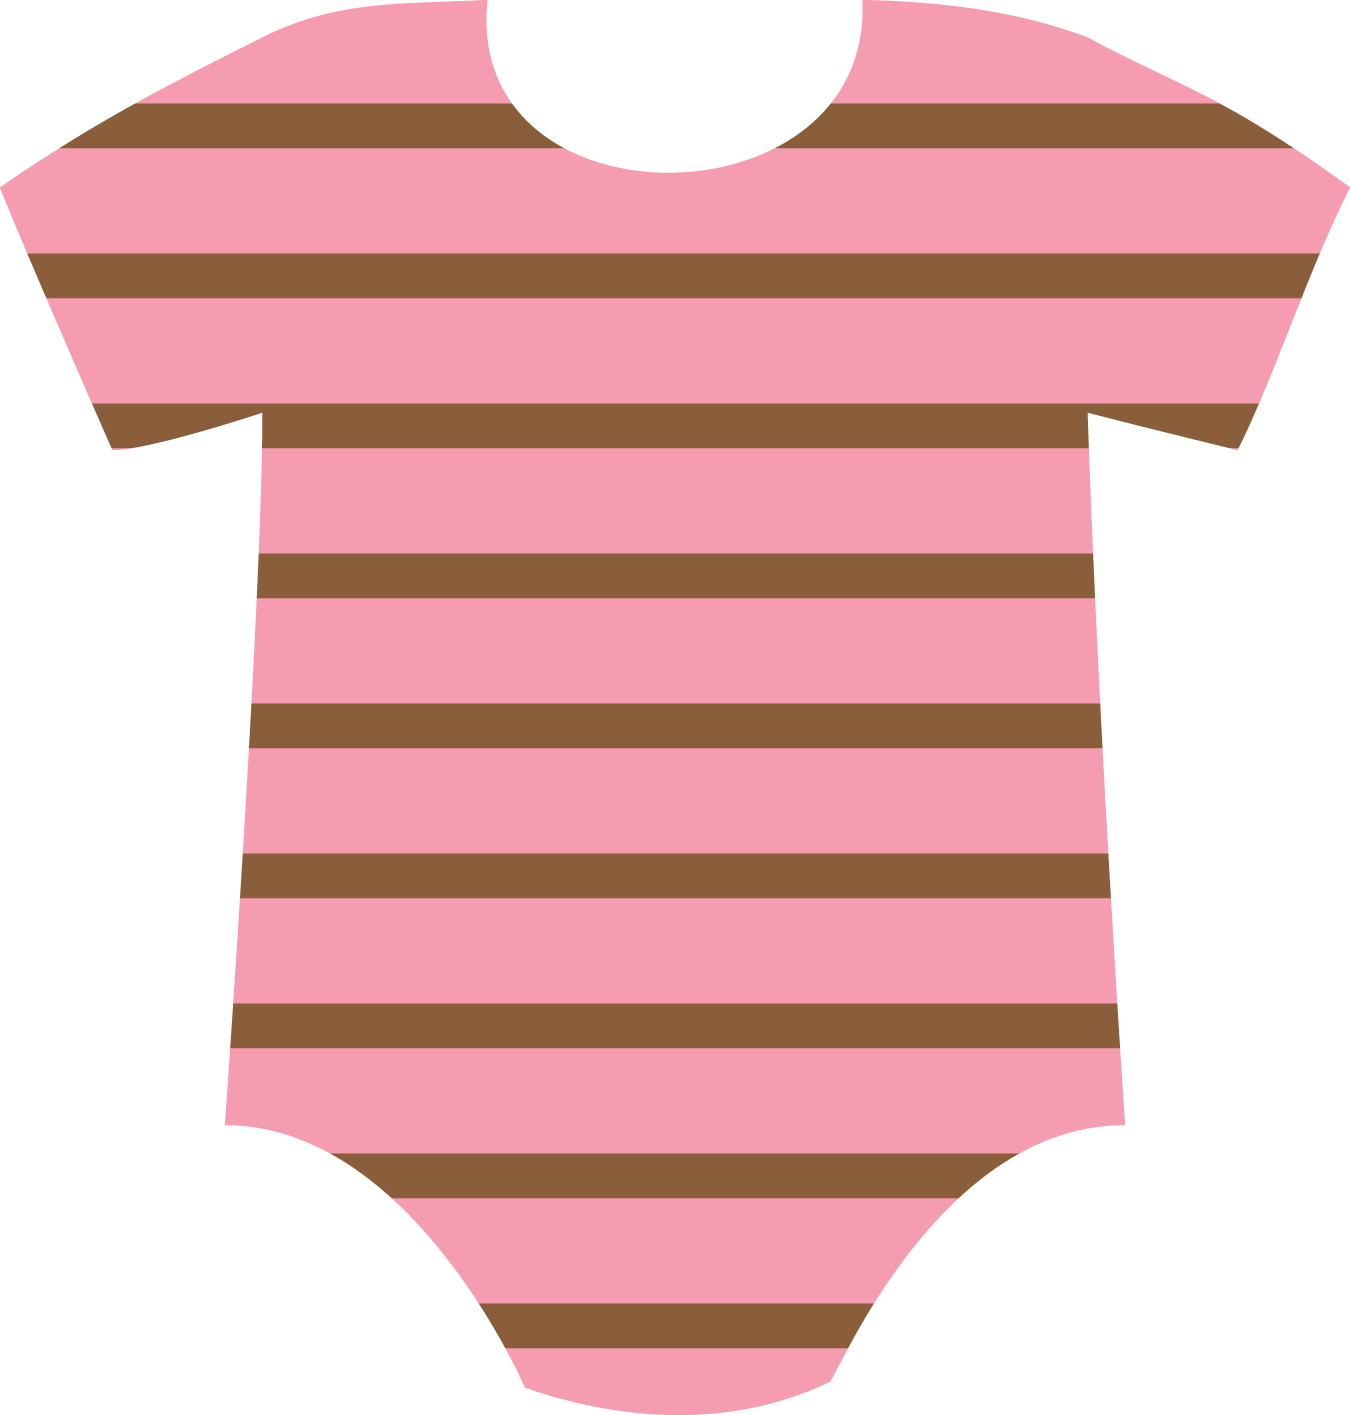 baby onesies clipart oh my baby